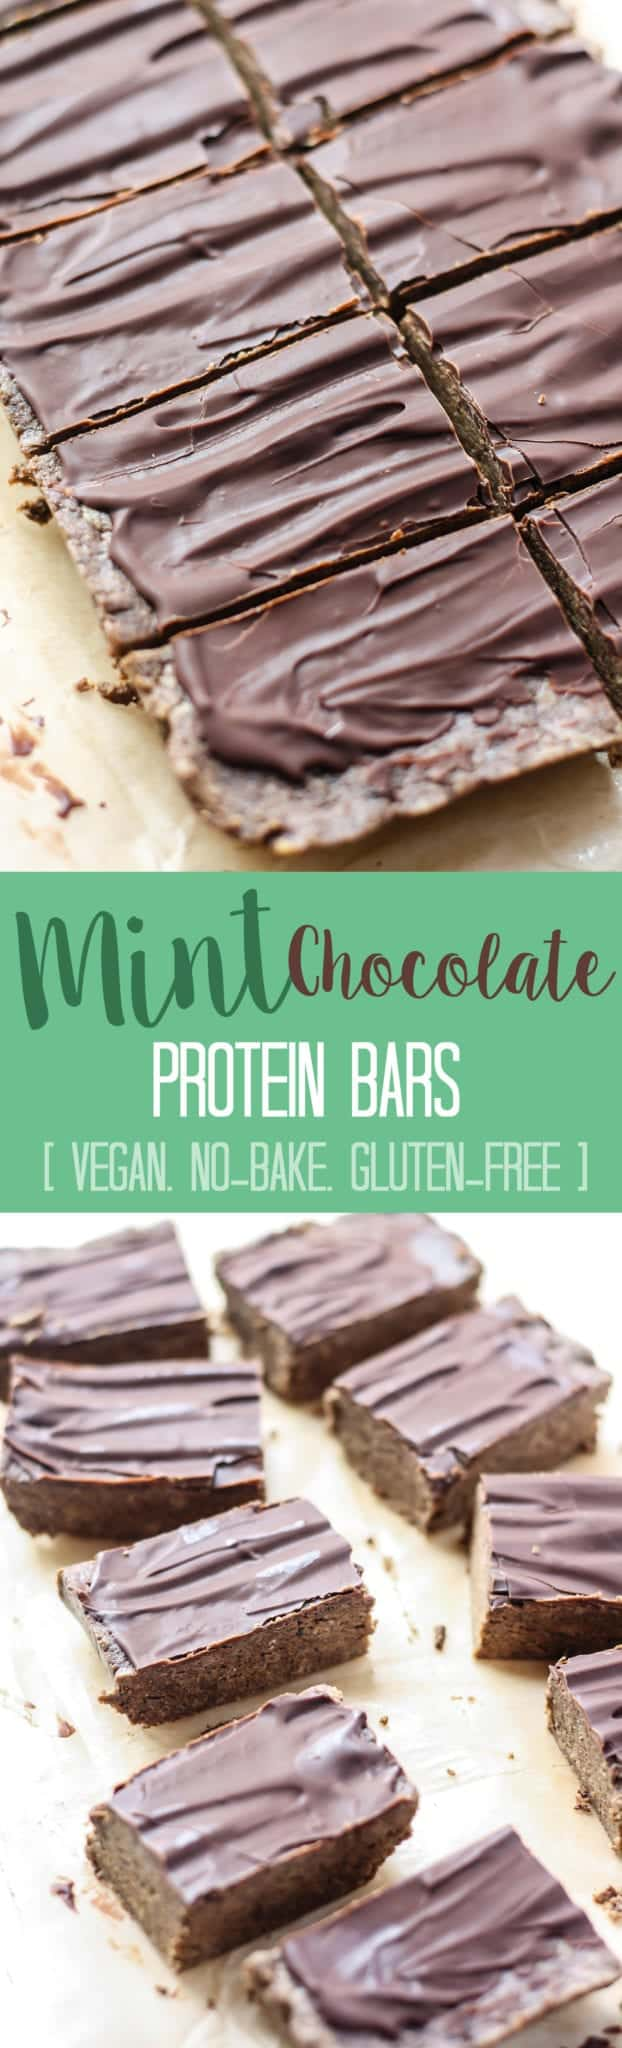 Mint Chocolate Protein Bars [Fit Mitten Kitchen] The perfect no-bake snack with 8 grams of protein, 11 grams of healthy fats and 4 grams of fiber to keep you feeling full! No-bake, vegan, cheaper than store-bought, and only 30 minutes in the freezer.